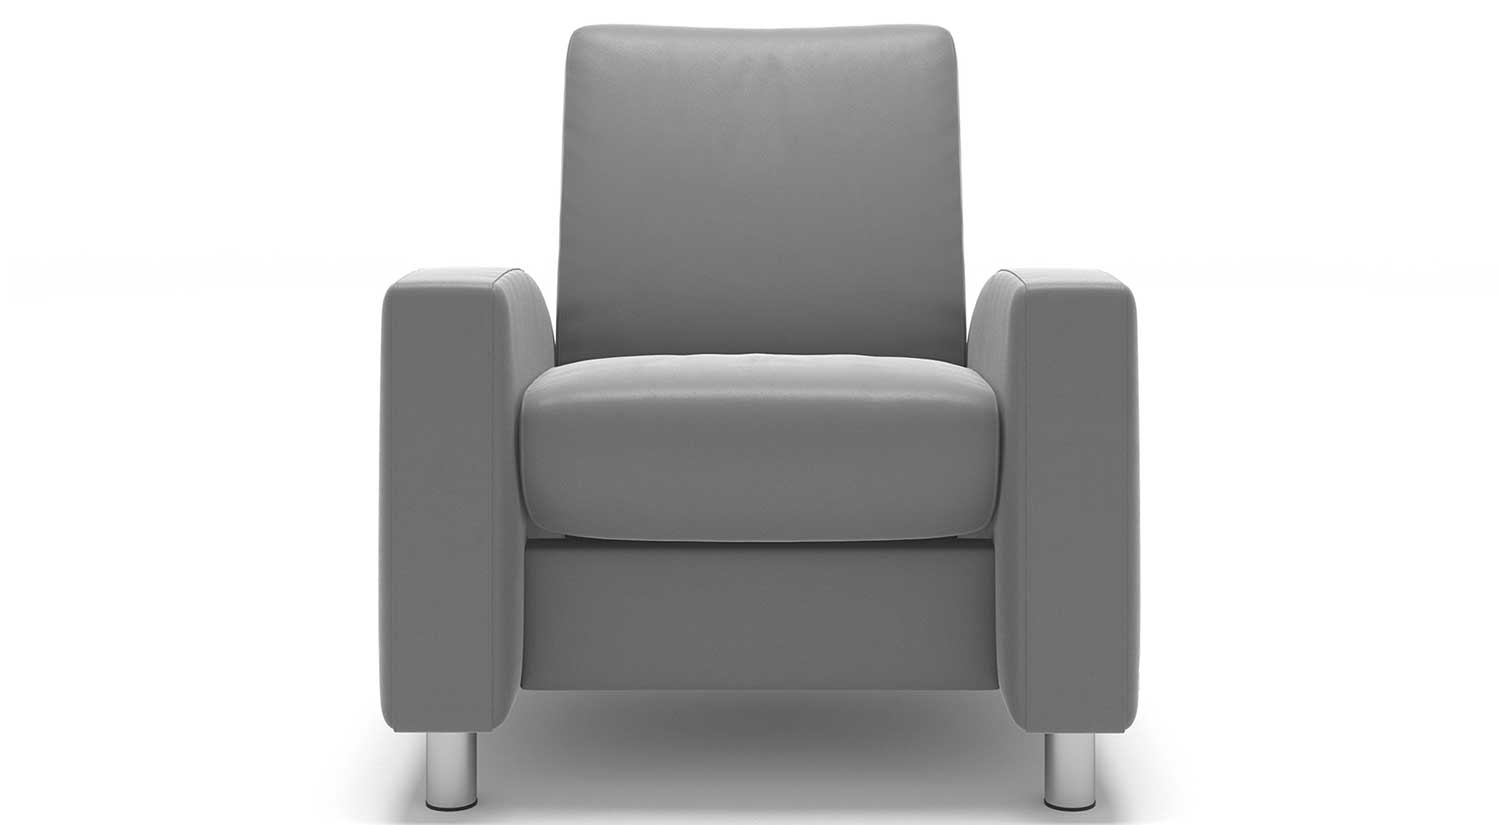 Arion19 Stressless Lowback Chair